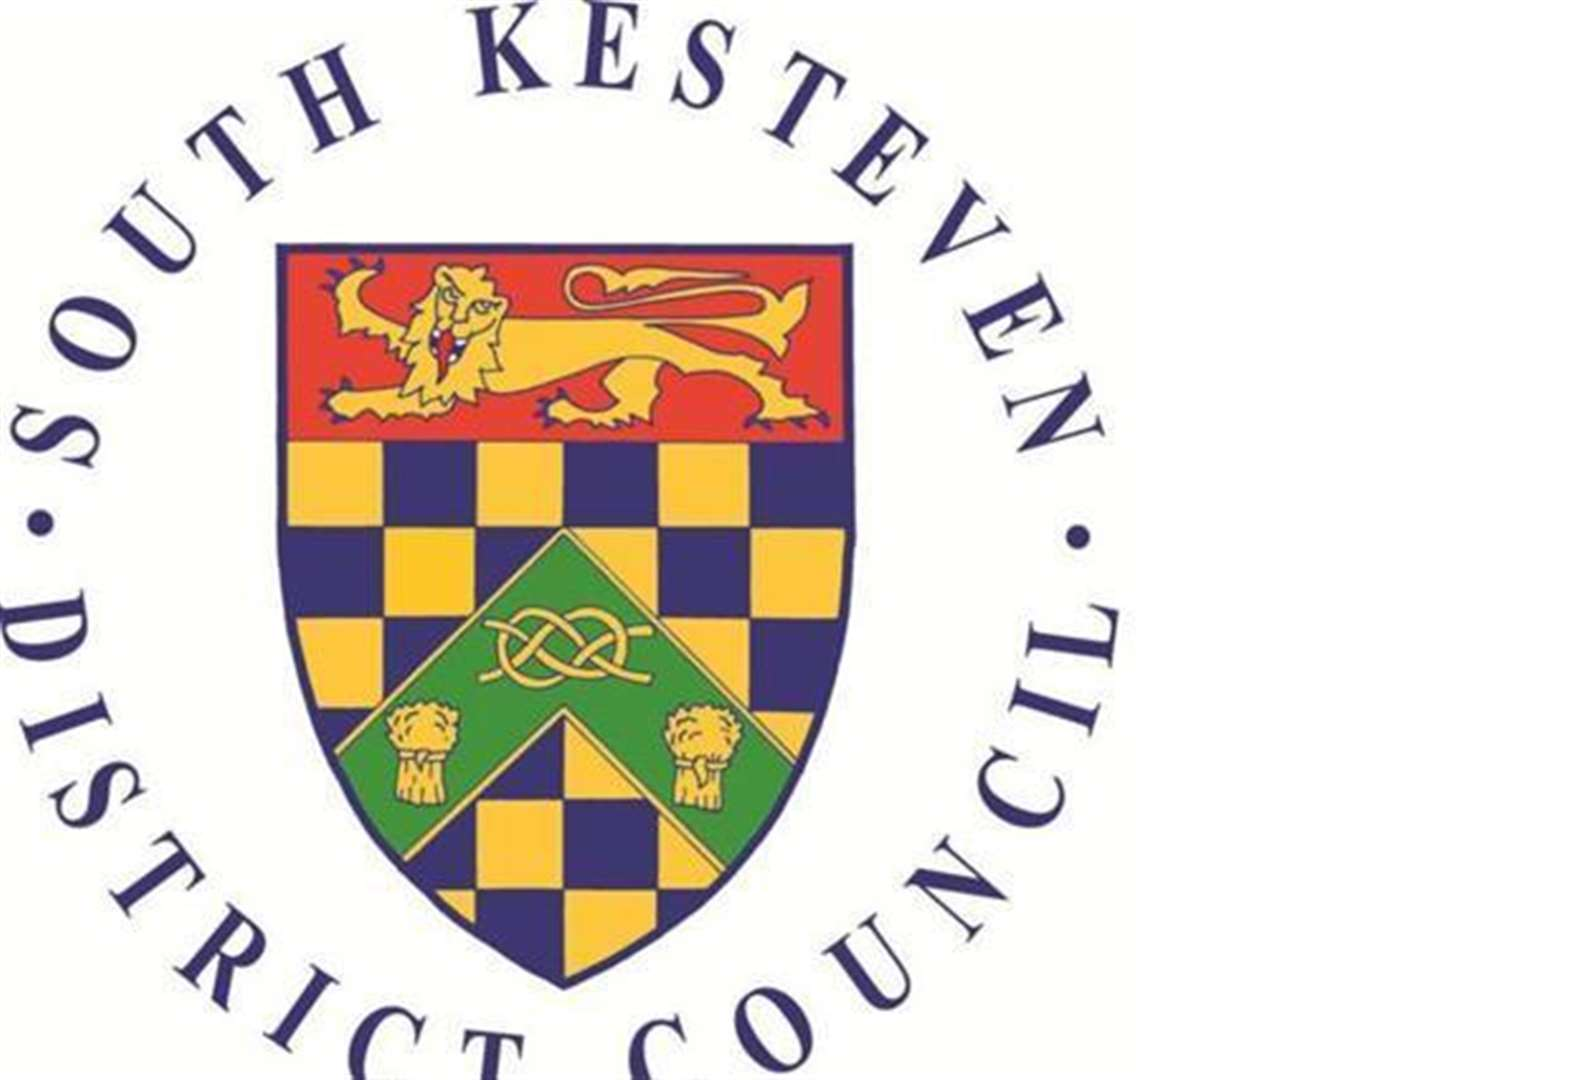 Tourism in South Kesteven gets £120,000 boost